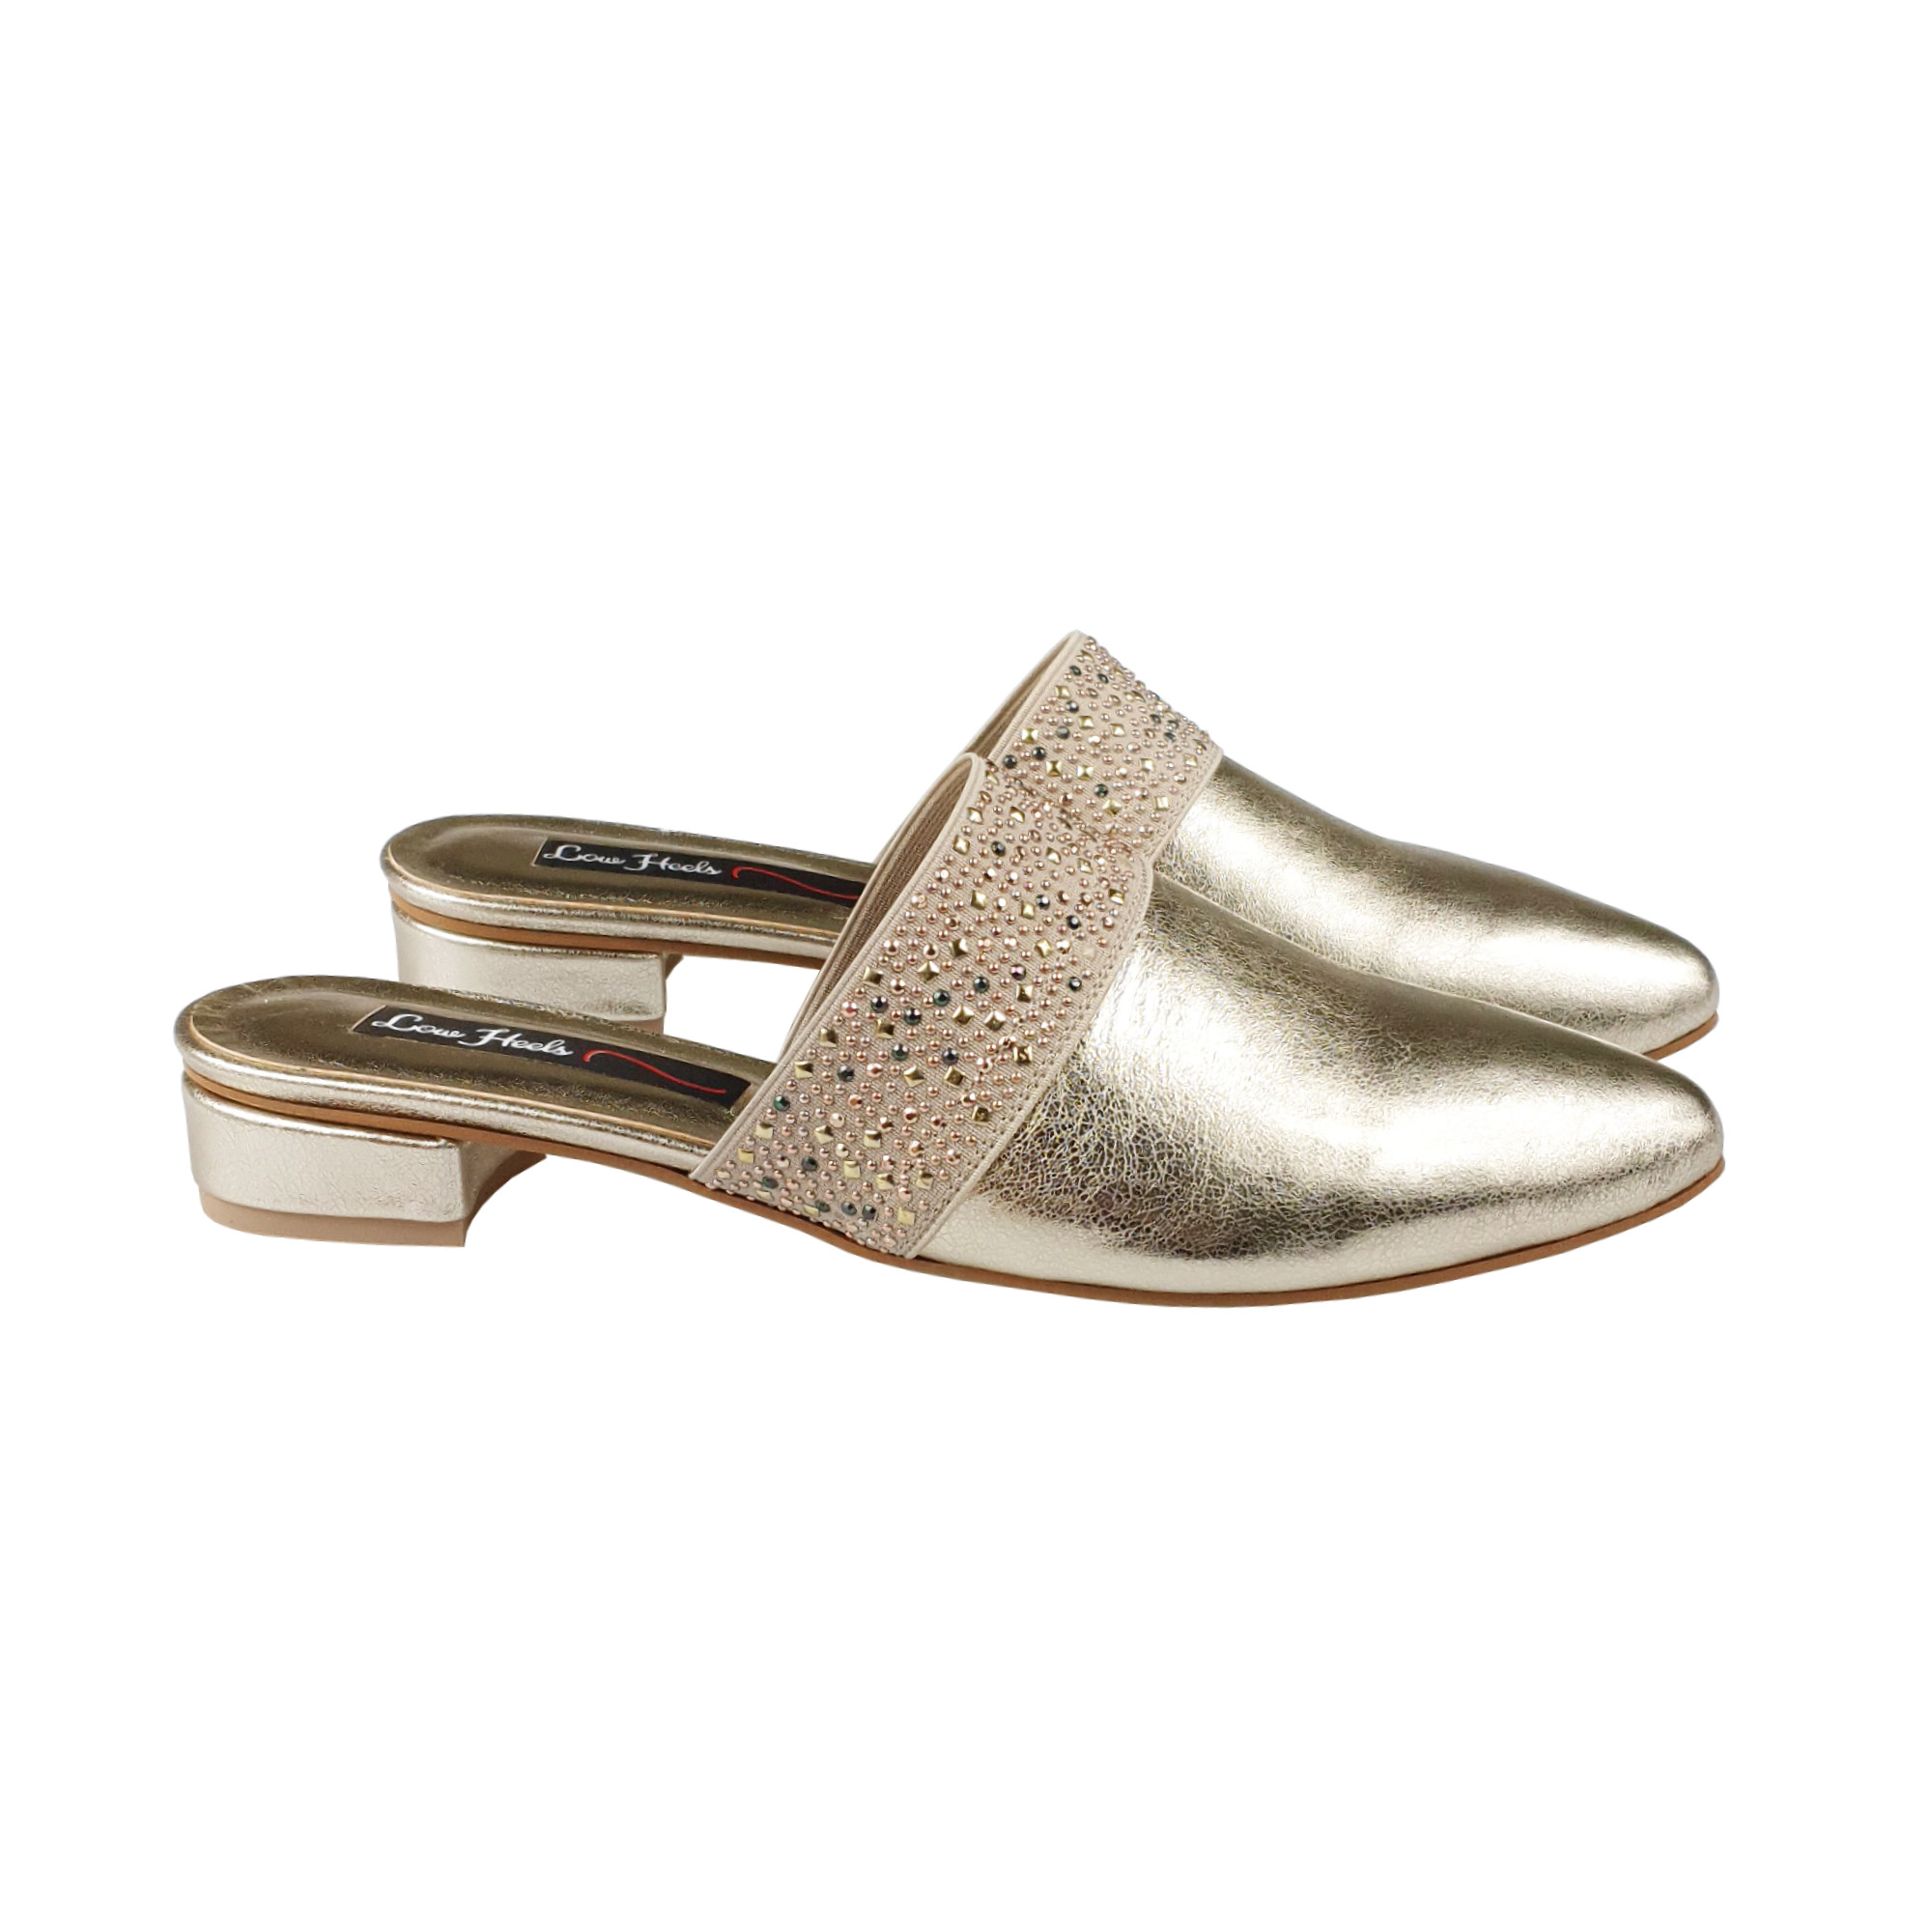 Zara mules with elastic insets in gold leather